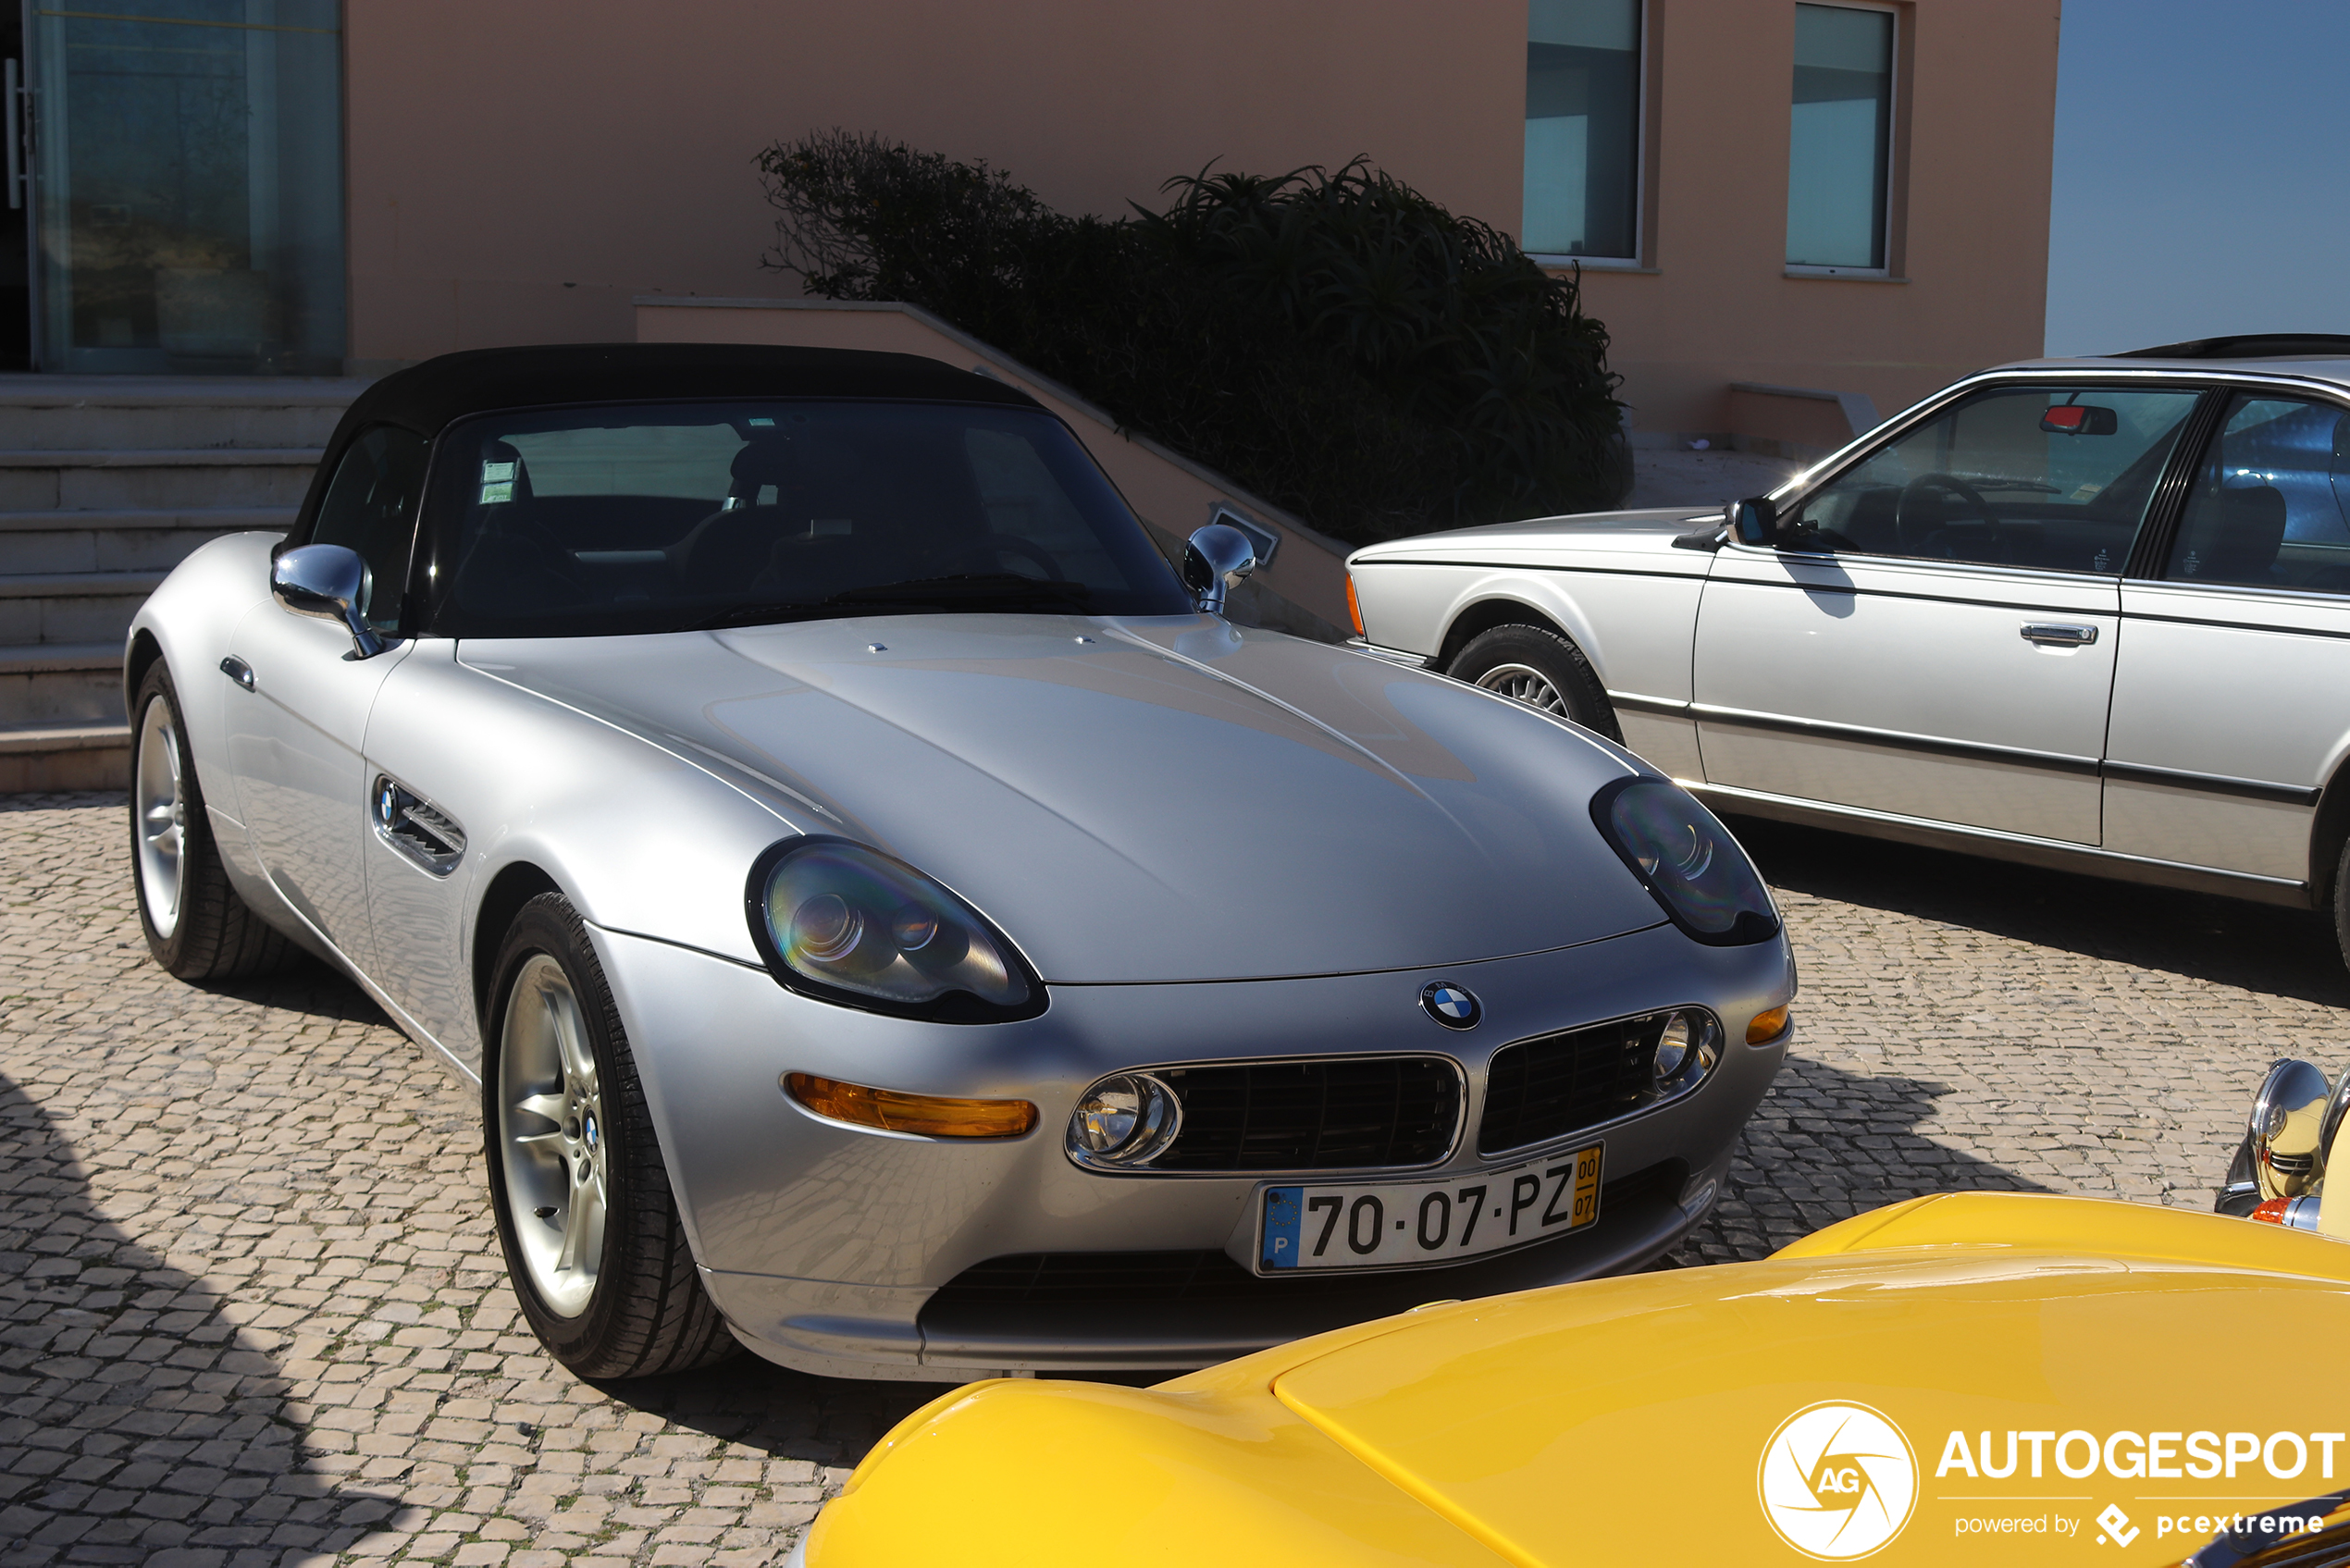 This BMW Z8 still looks brand new!